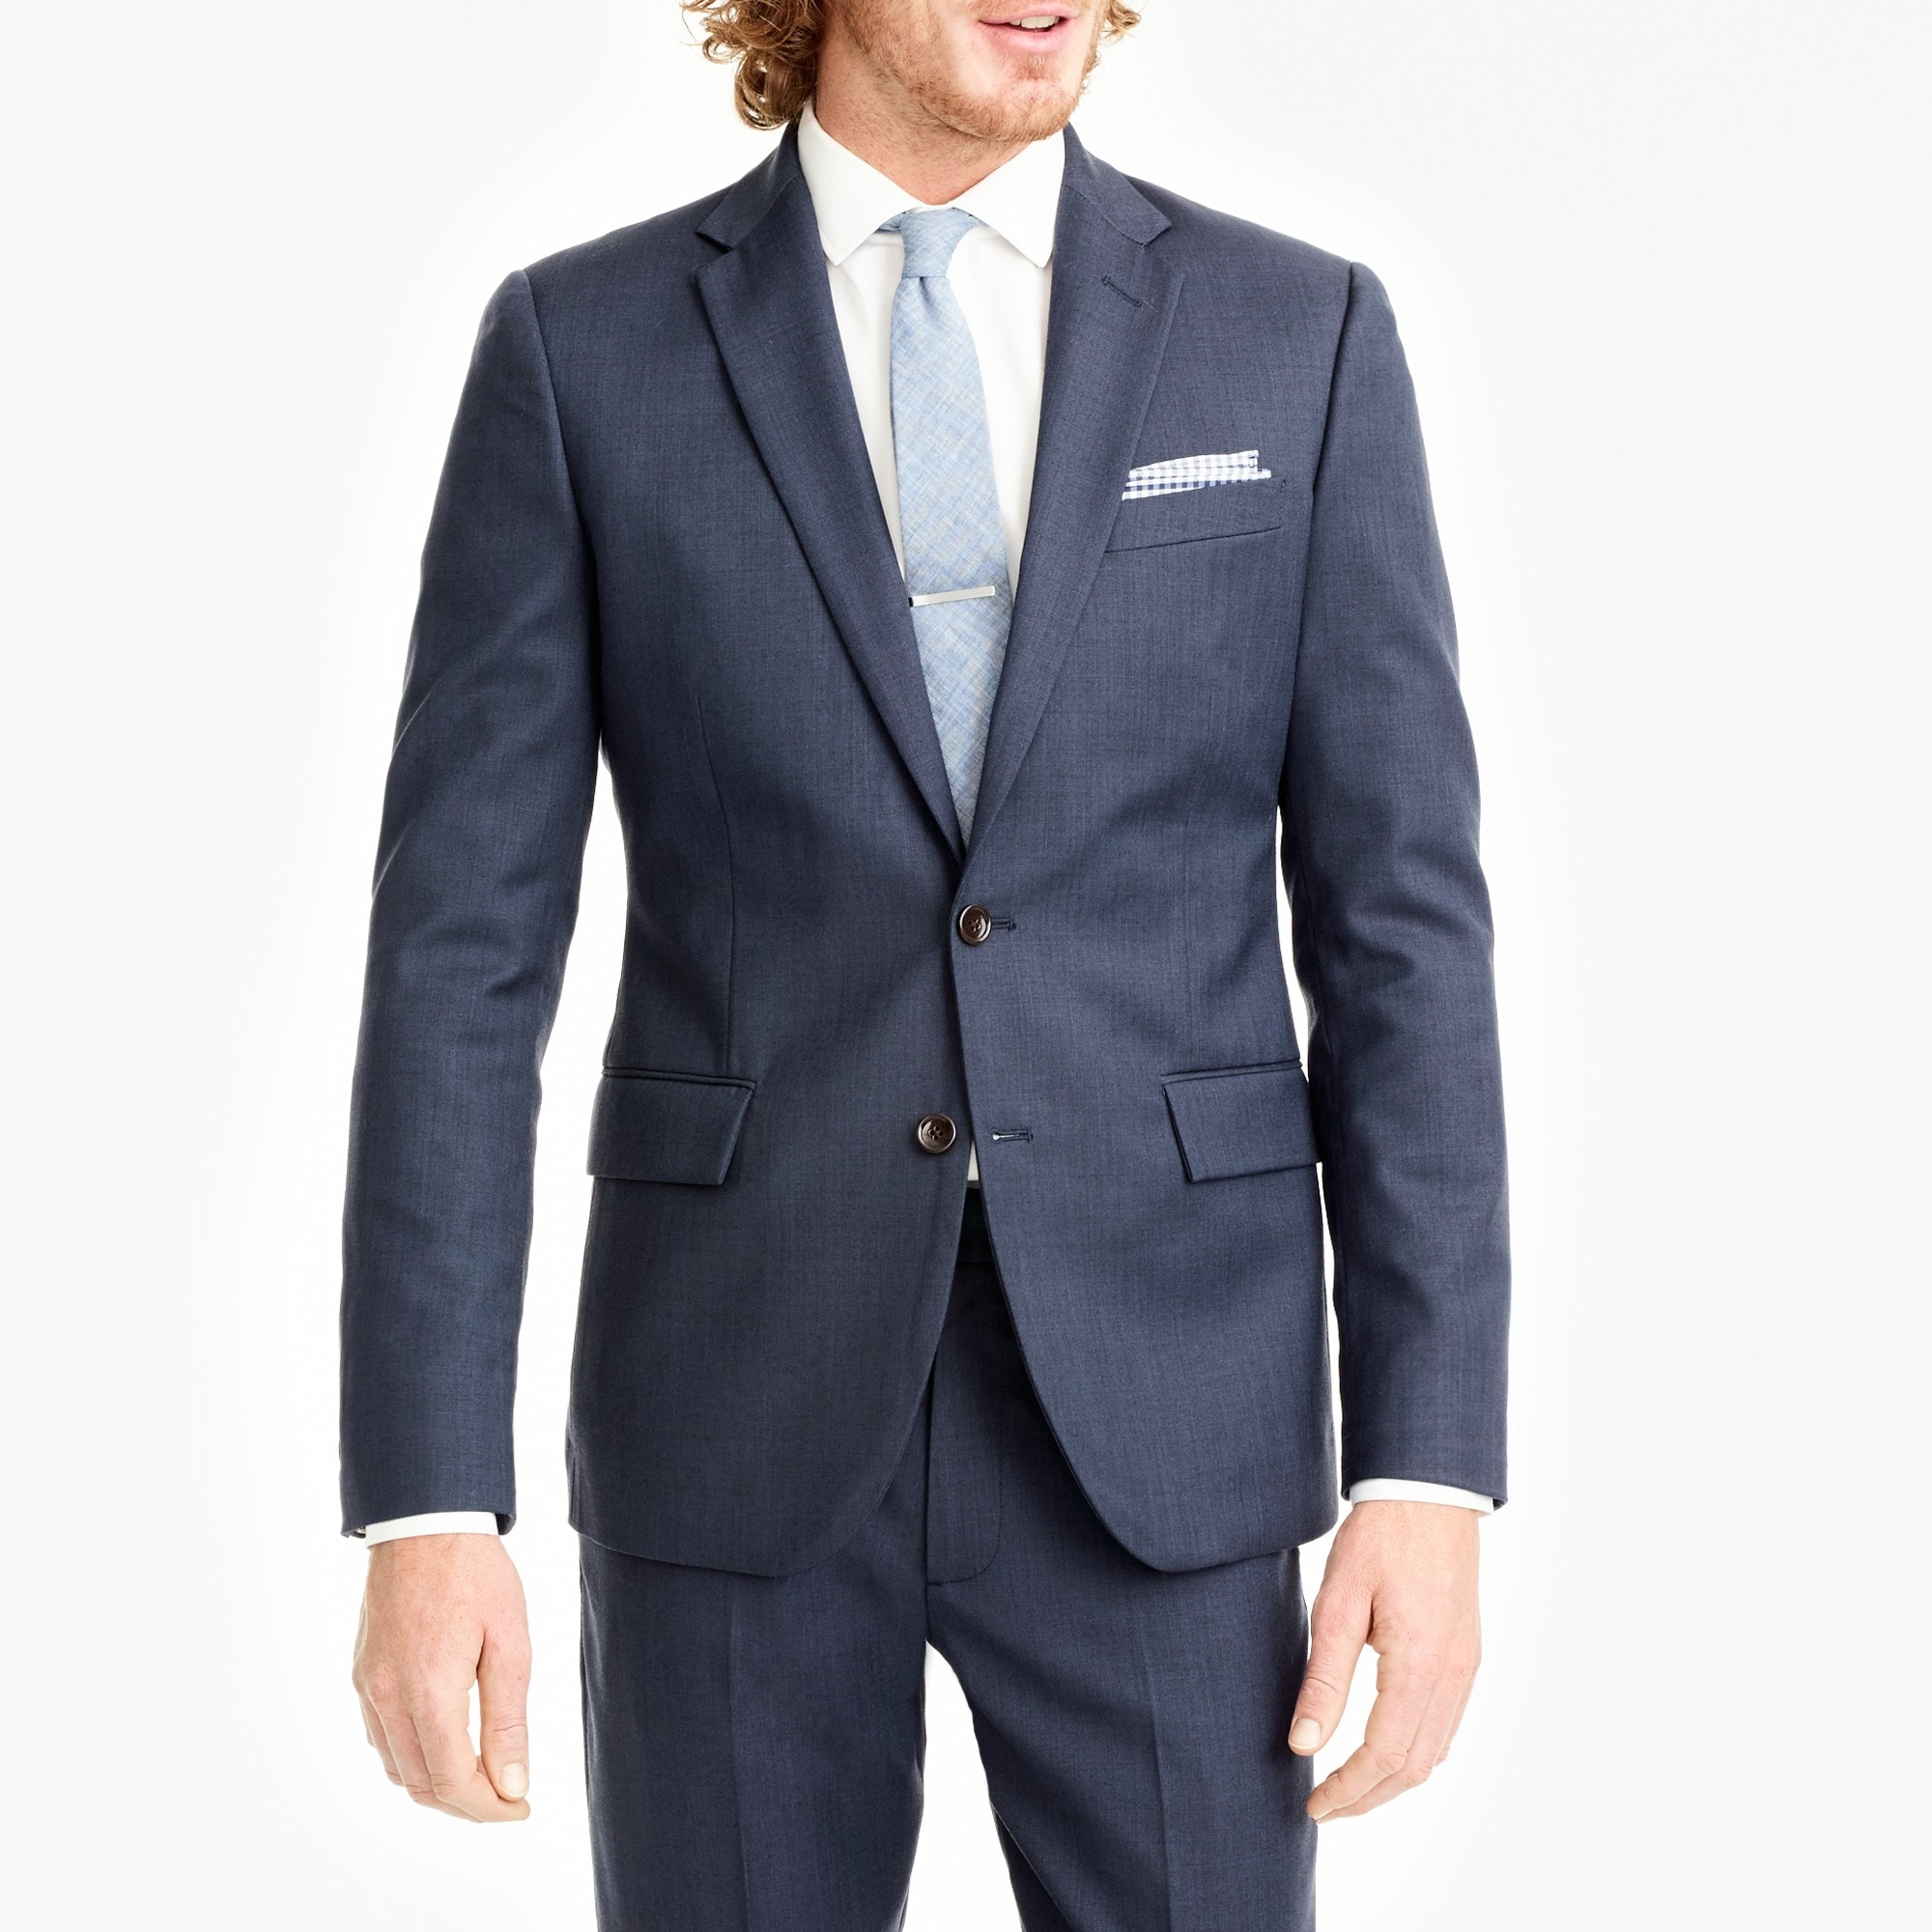 factory mens Classic-fit Thompson suit jacket in worsted wool